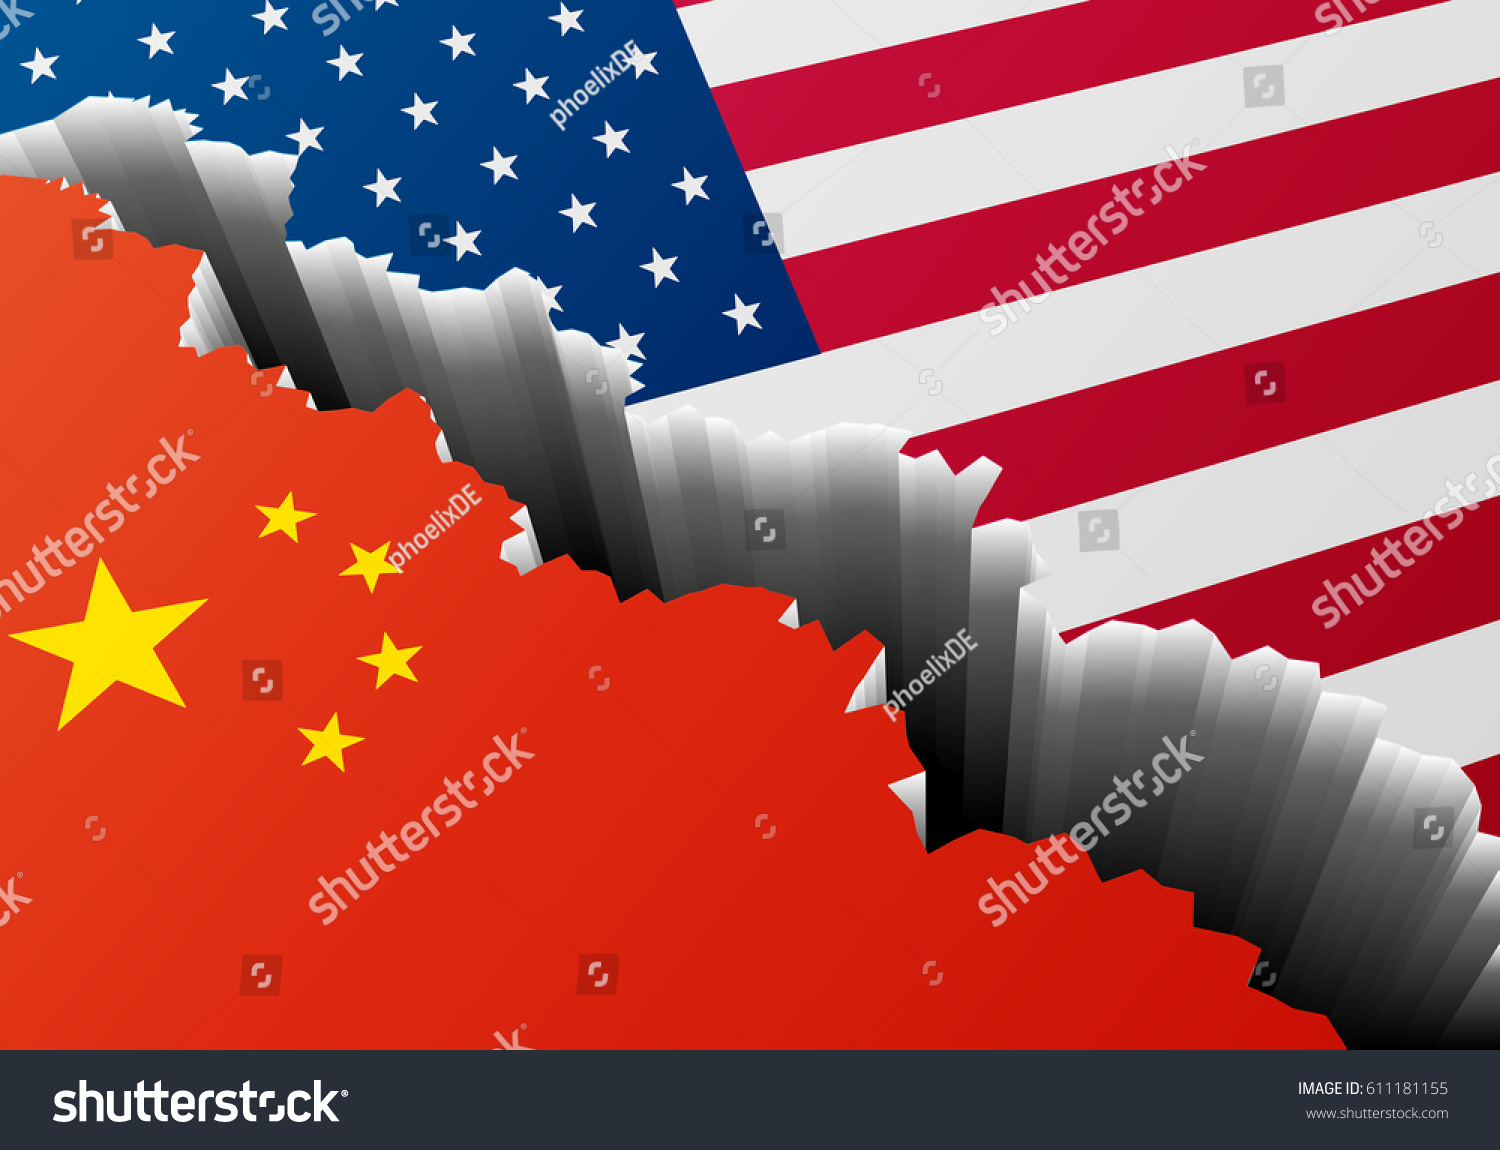 Detailed Illustration Chinese American National Flags Stock Photo